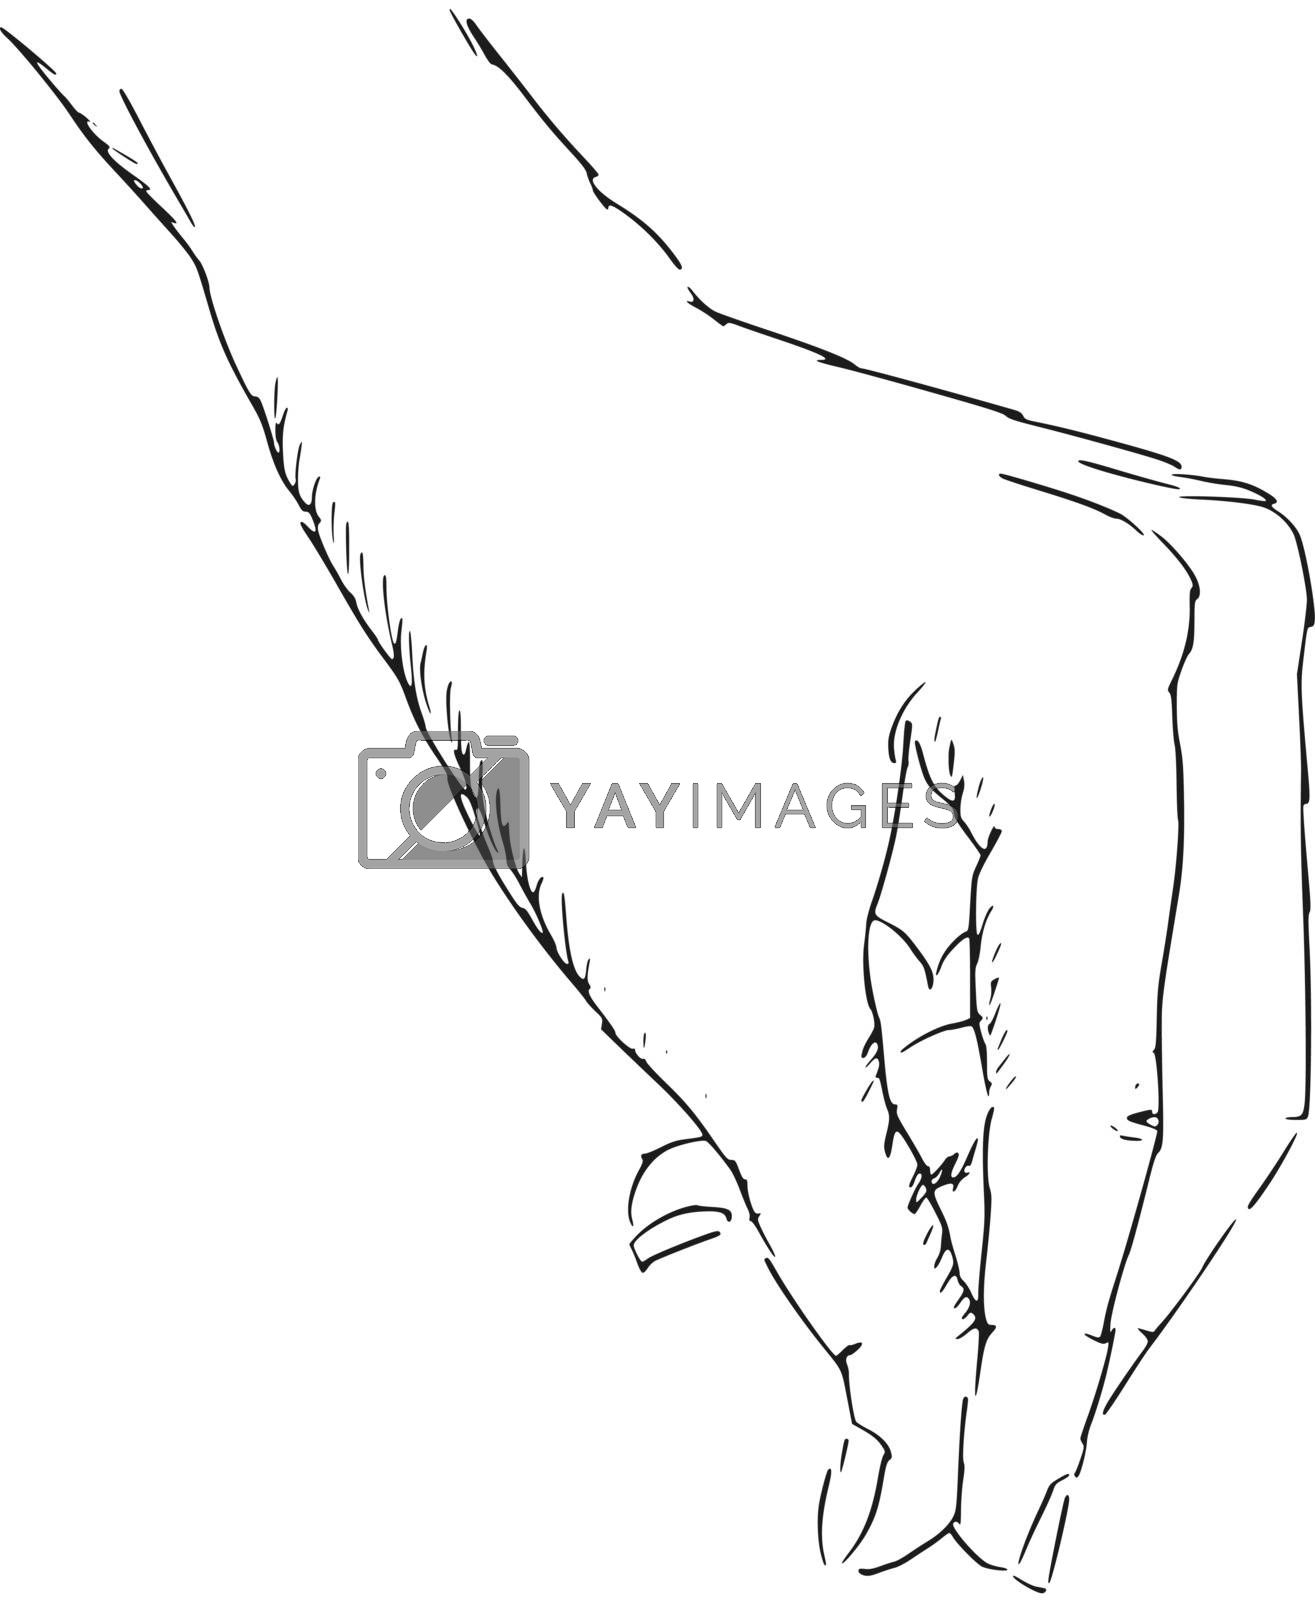 hand drawn, sketch, illustration of hand of woman